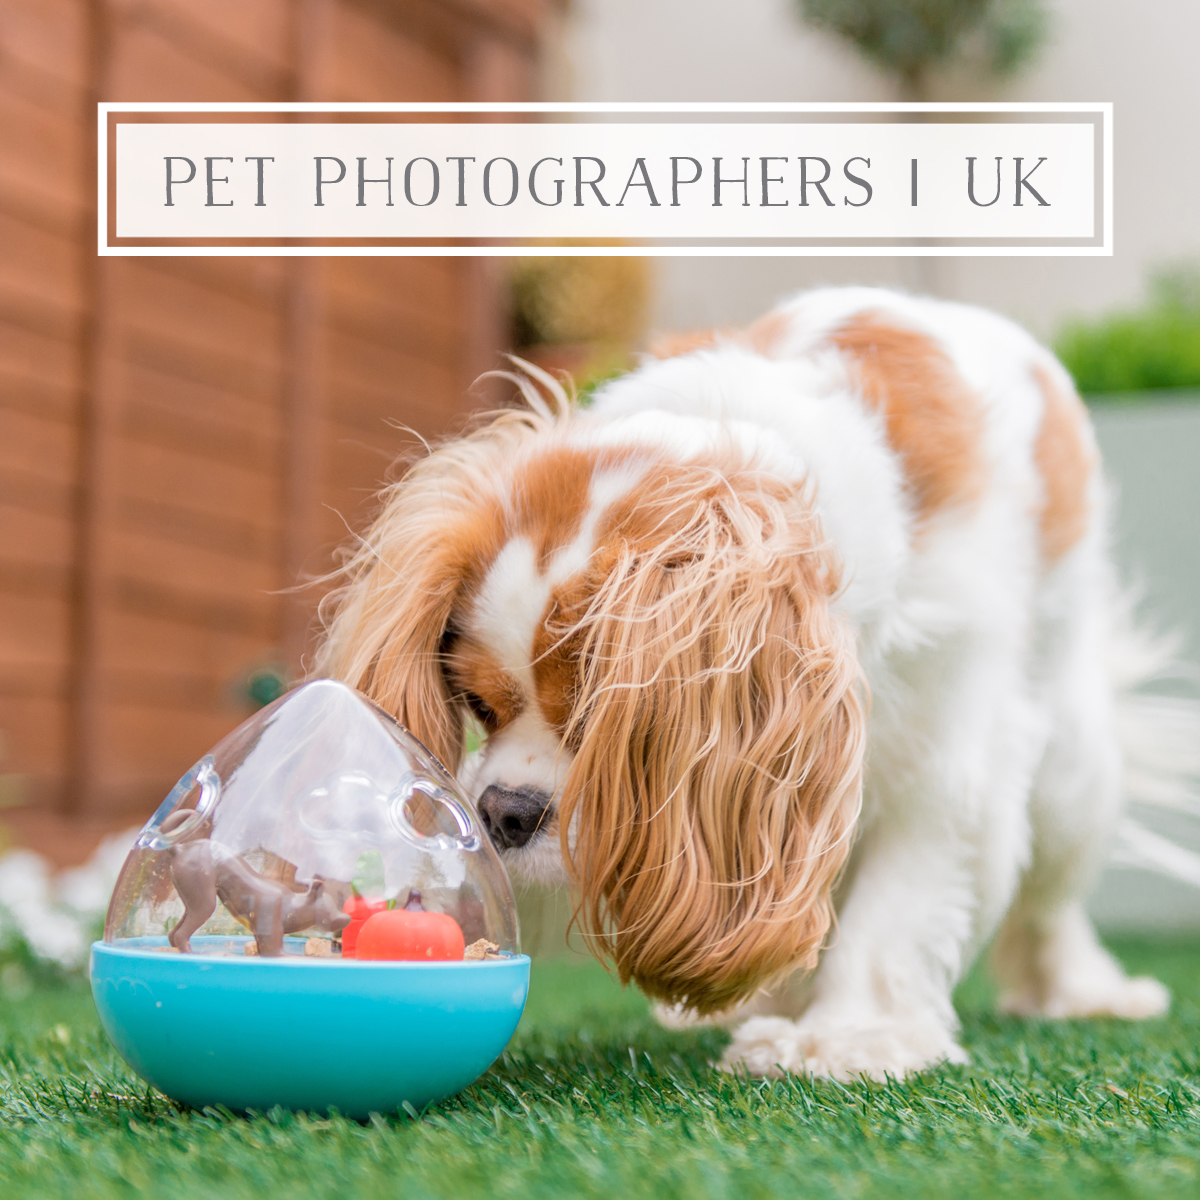 1200x1200_commercial_Pet_photographers_UK